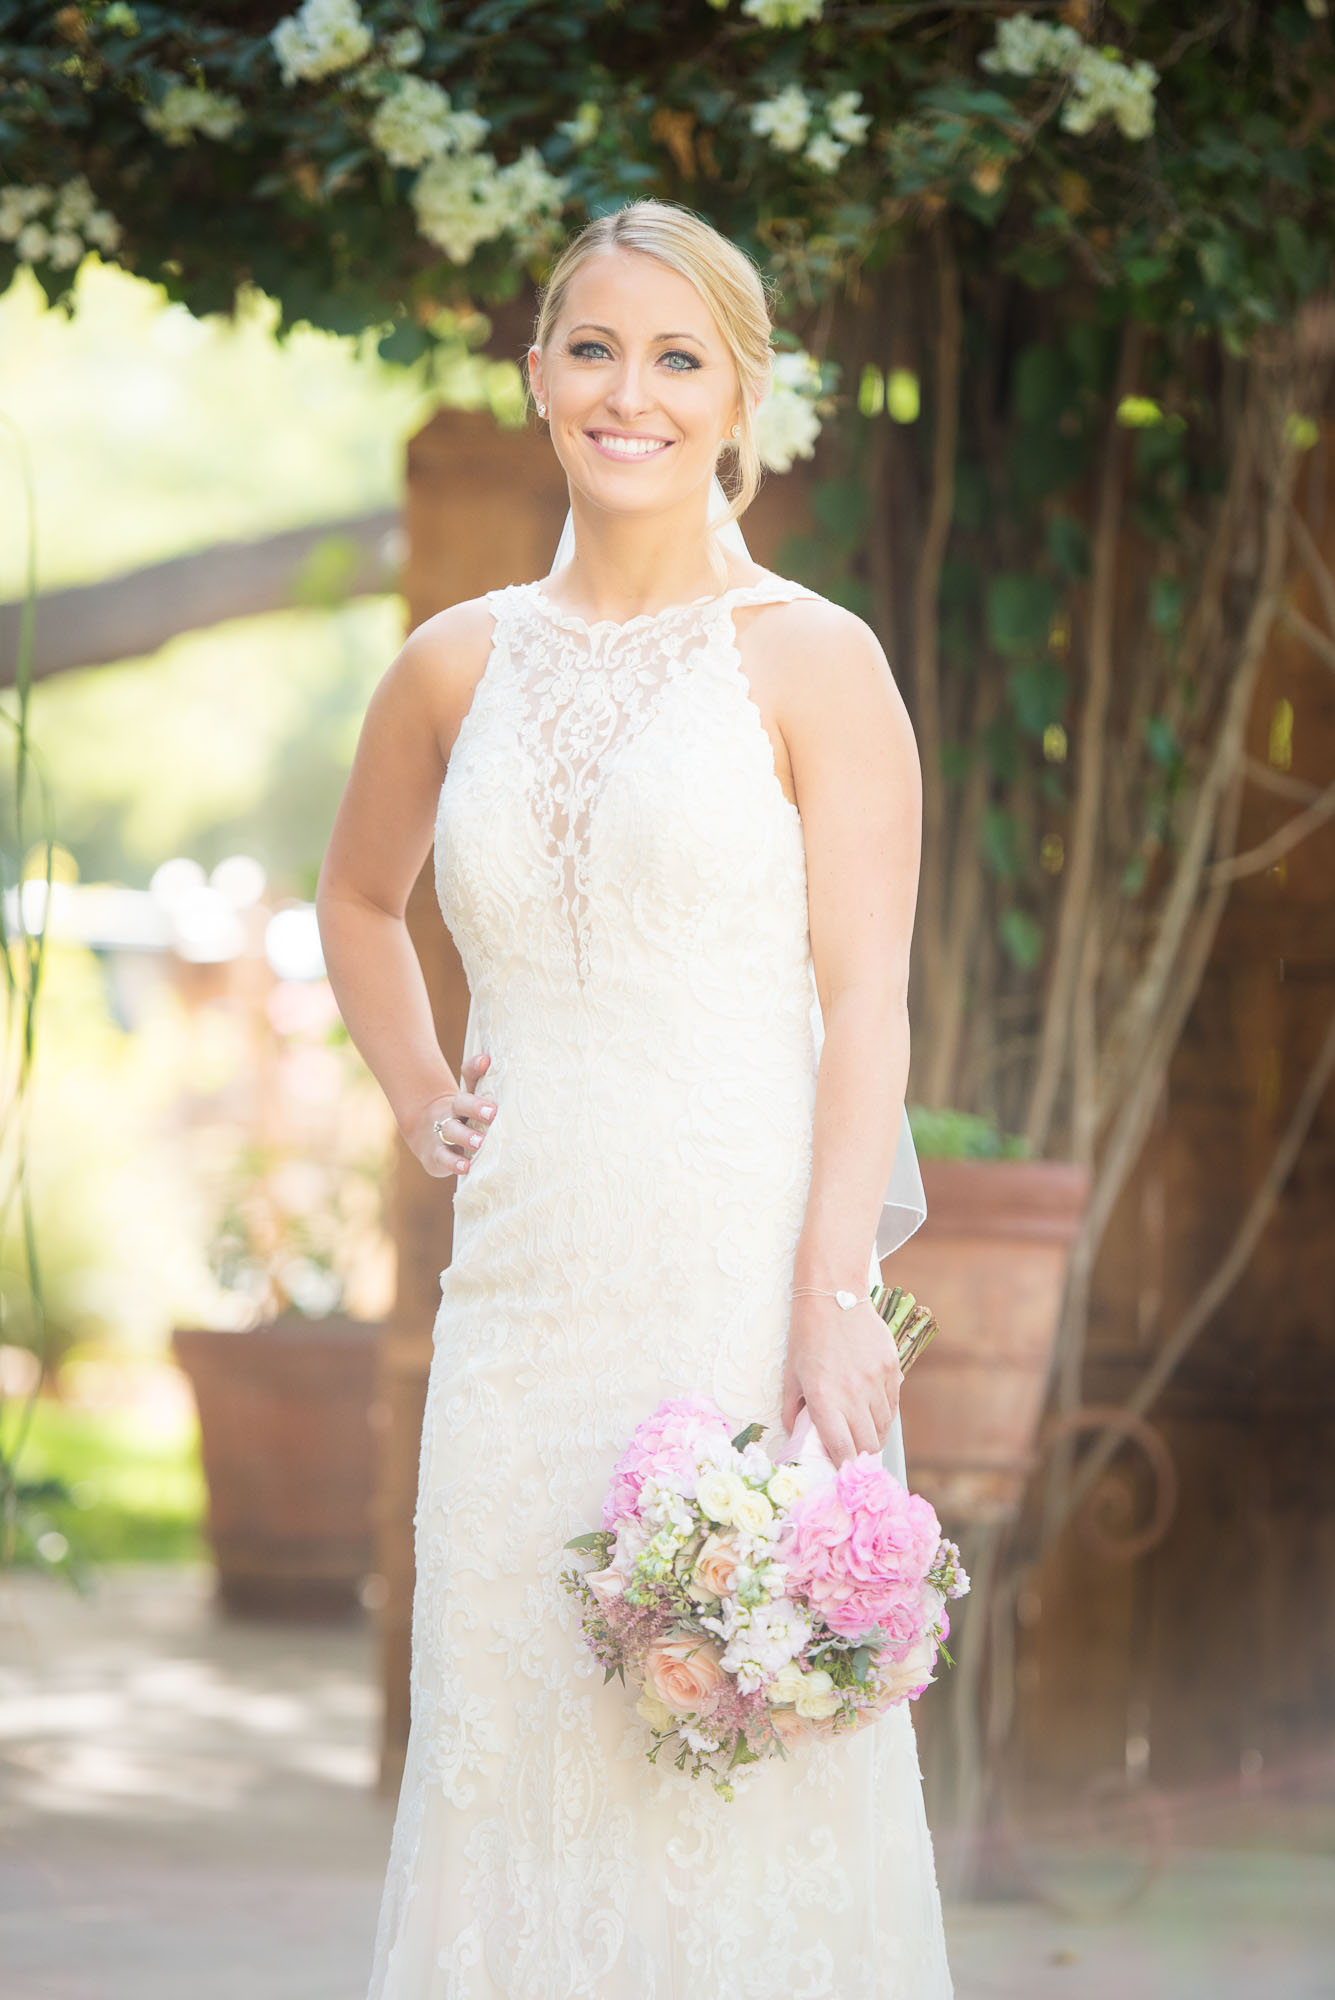 country wedding jamie jason country themed wedding dresses A whimsical portrait of the beautiful bride during her private estate country wedding photography session